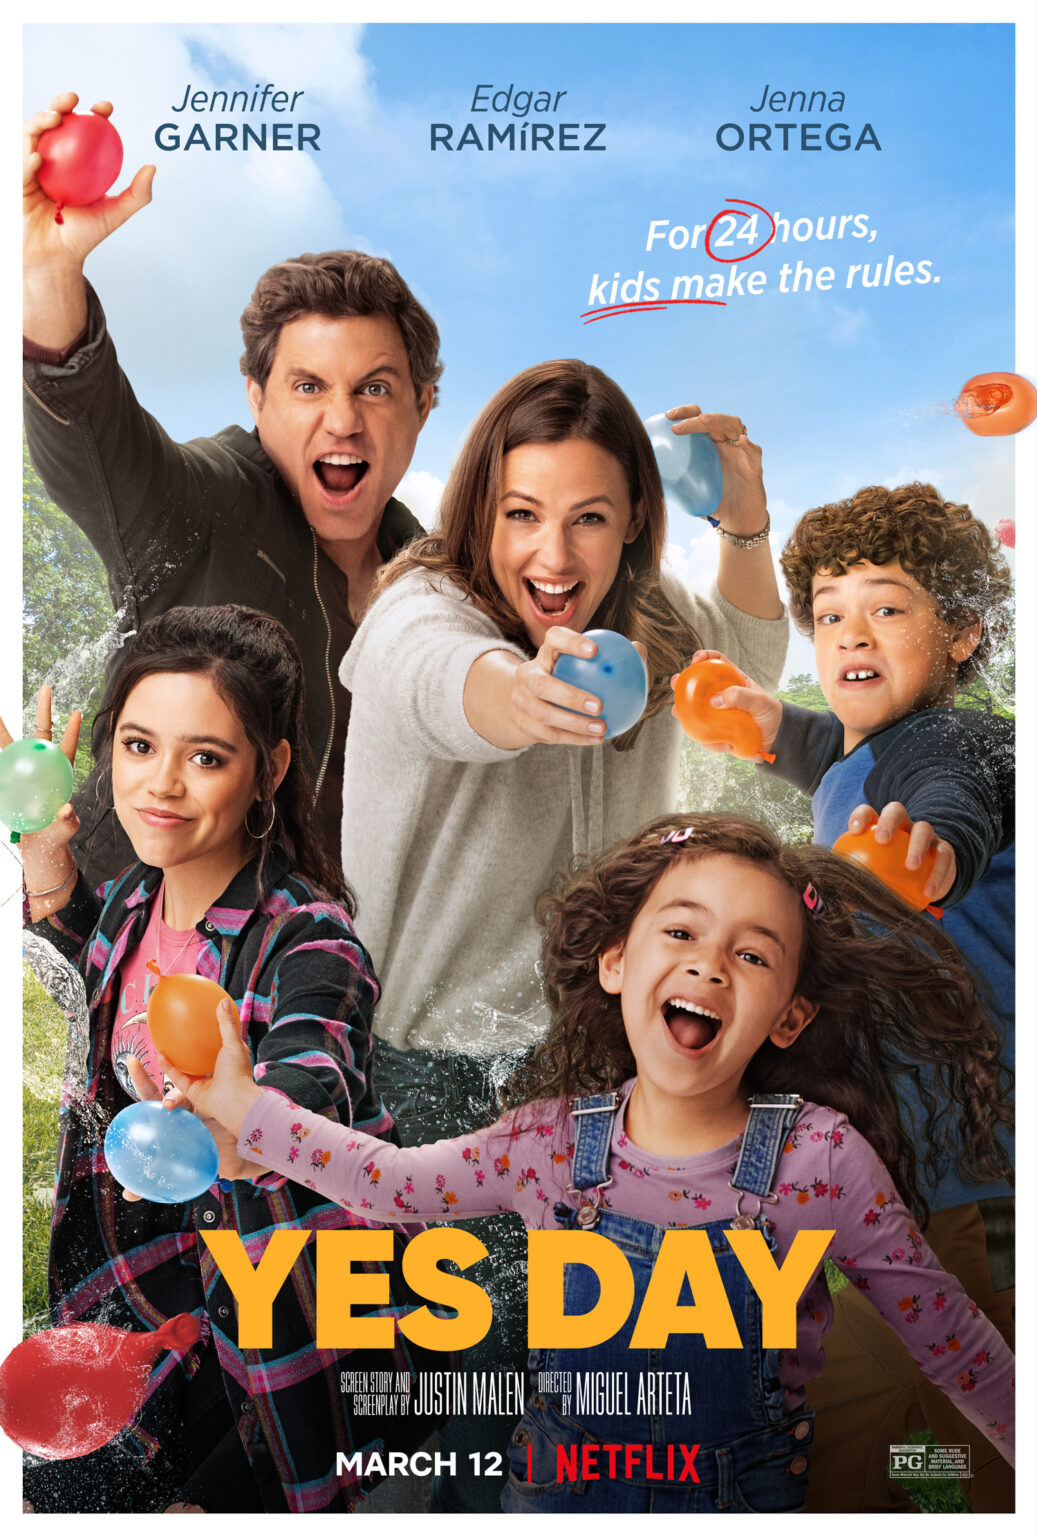 EN-US_Yes_Day_Main_Vertical_27x40_RGB_PRE-1037x1536